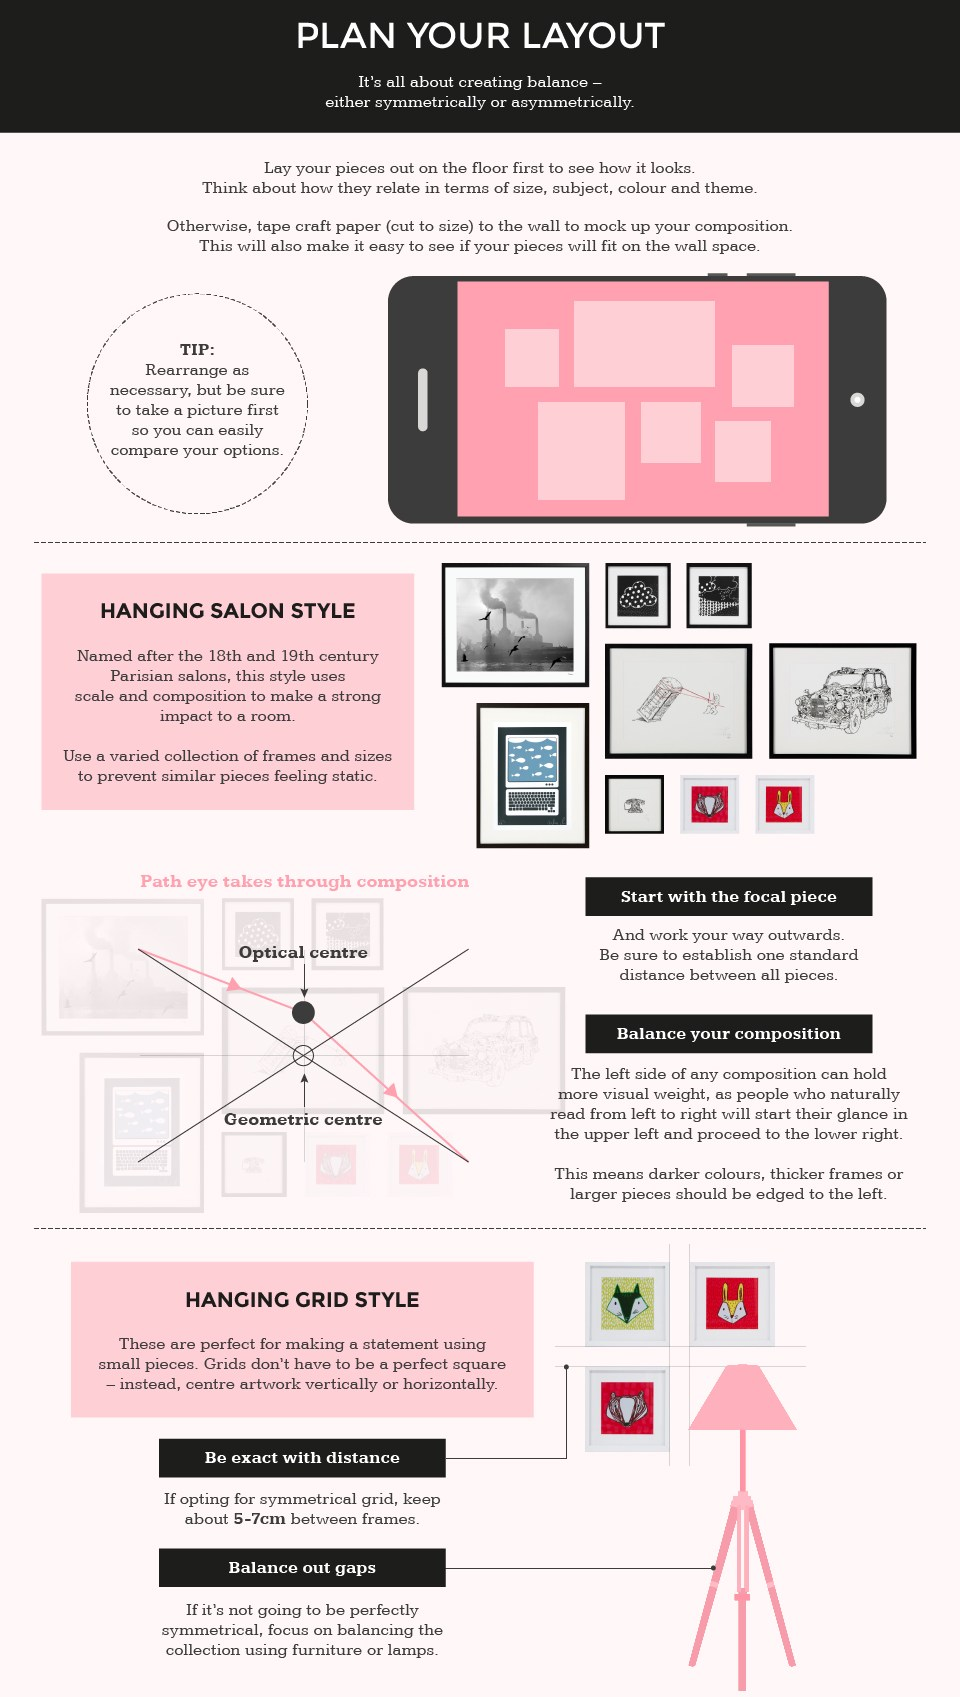 Guide to planning your layout when hanging pictures